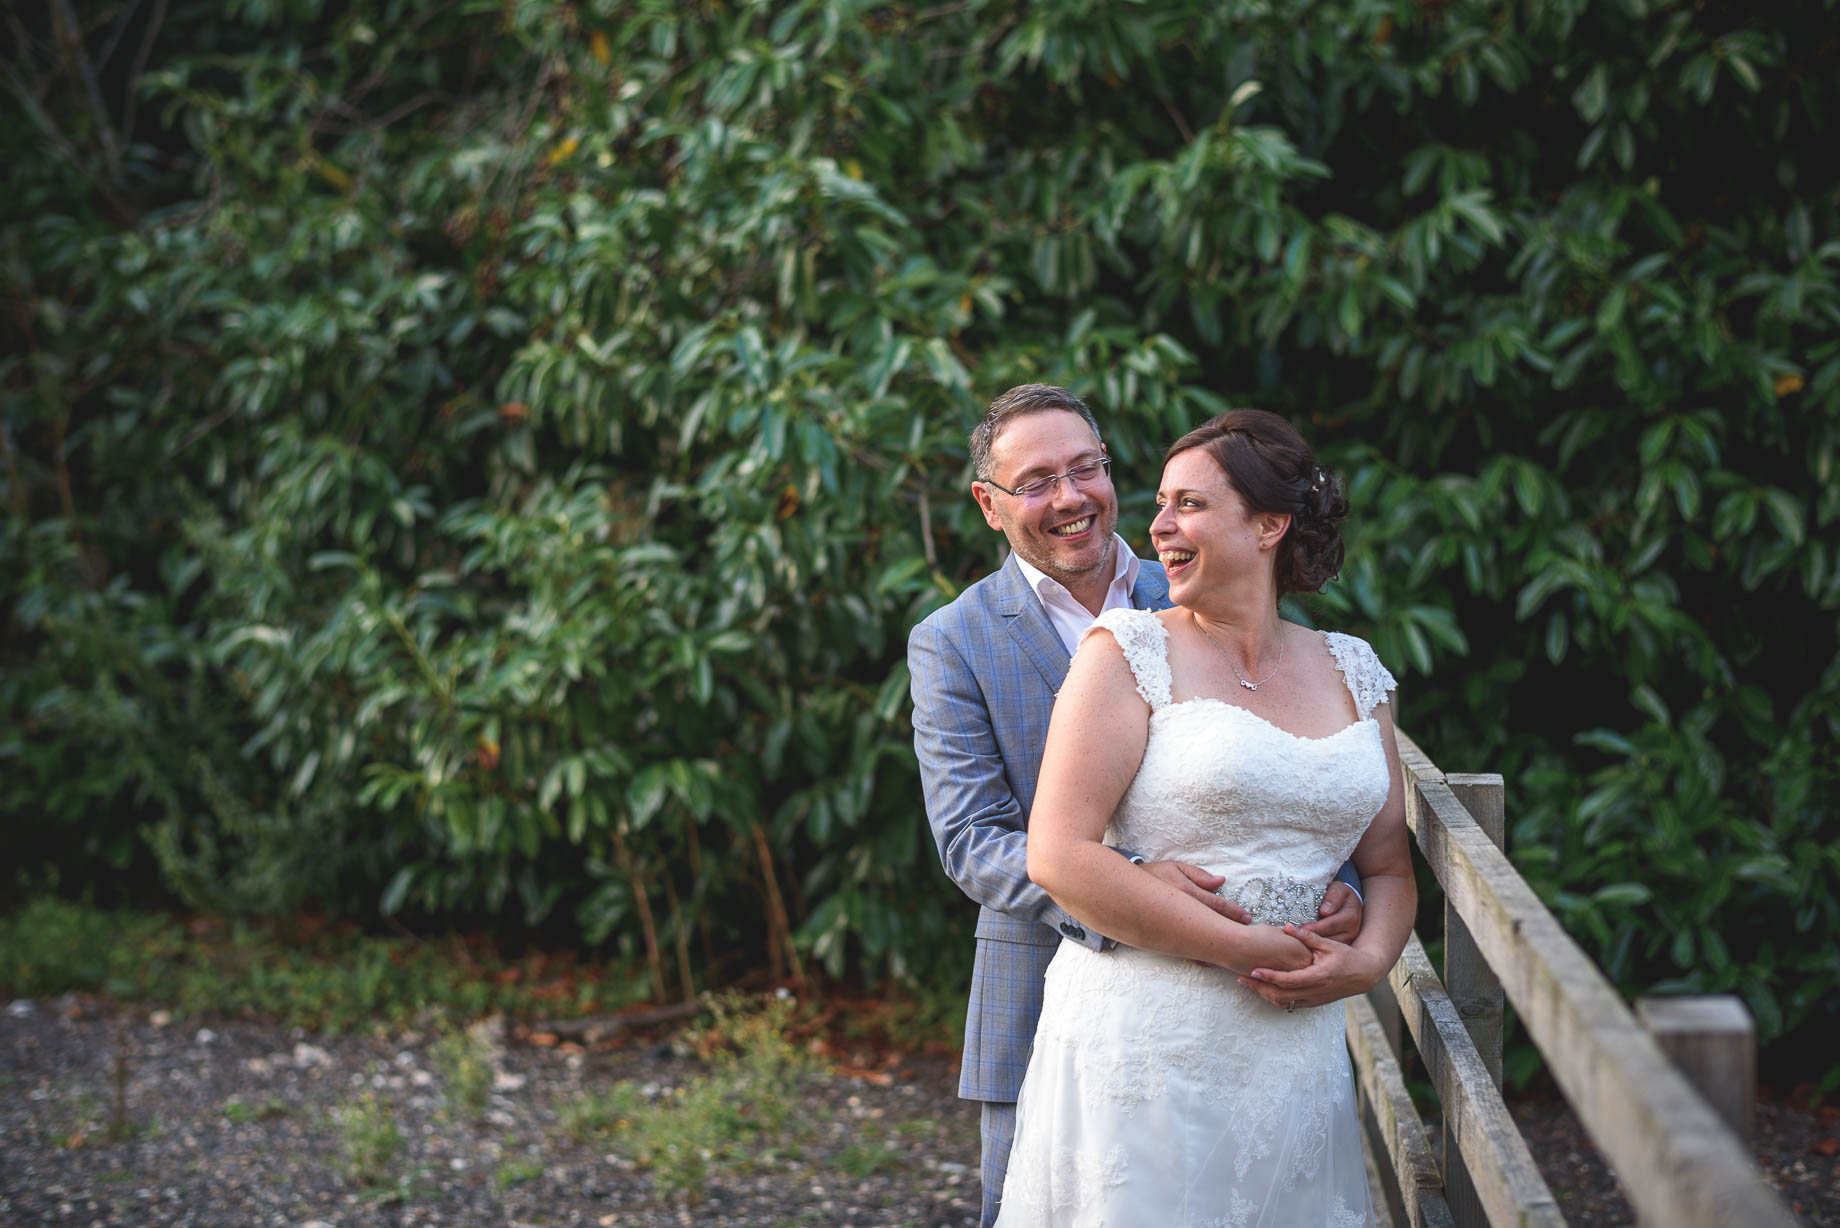 Luton Hoo wedding photography by Guy Collier Photography - Lauren and Gem (155 of 178)